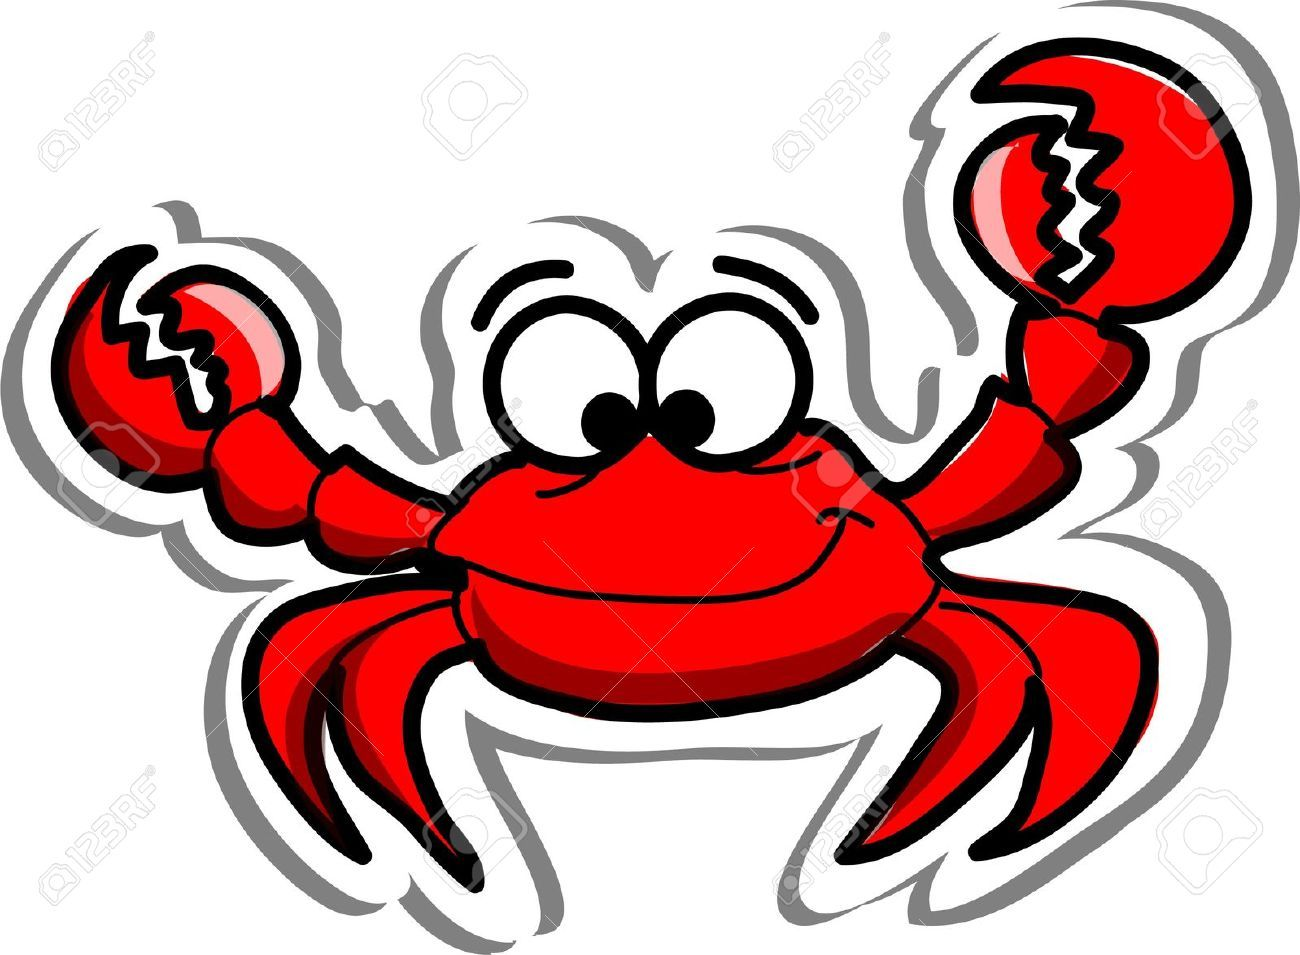 small resolution of crabs stock illustrations cliparts and royalty free crabs vectors